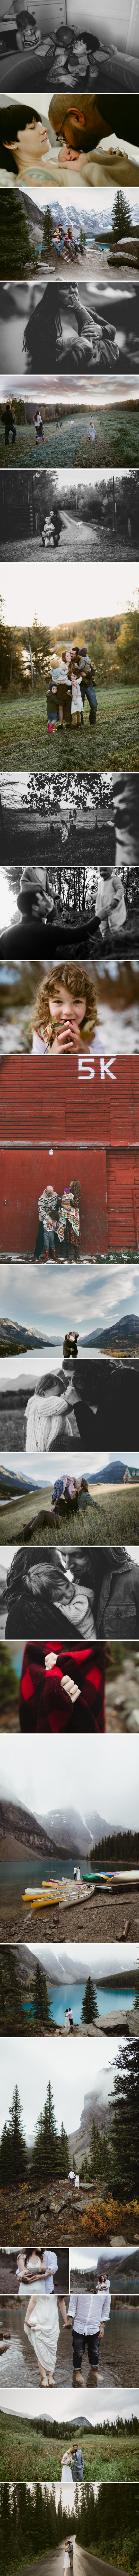 Canadian Rockies Family Photography | ©The Paper Deer Photography | thepaperdeer.ca